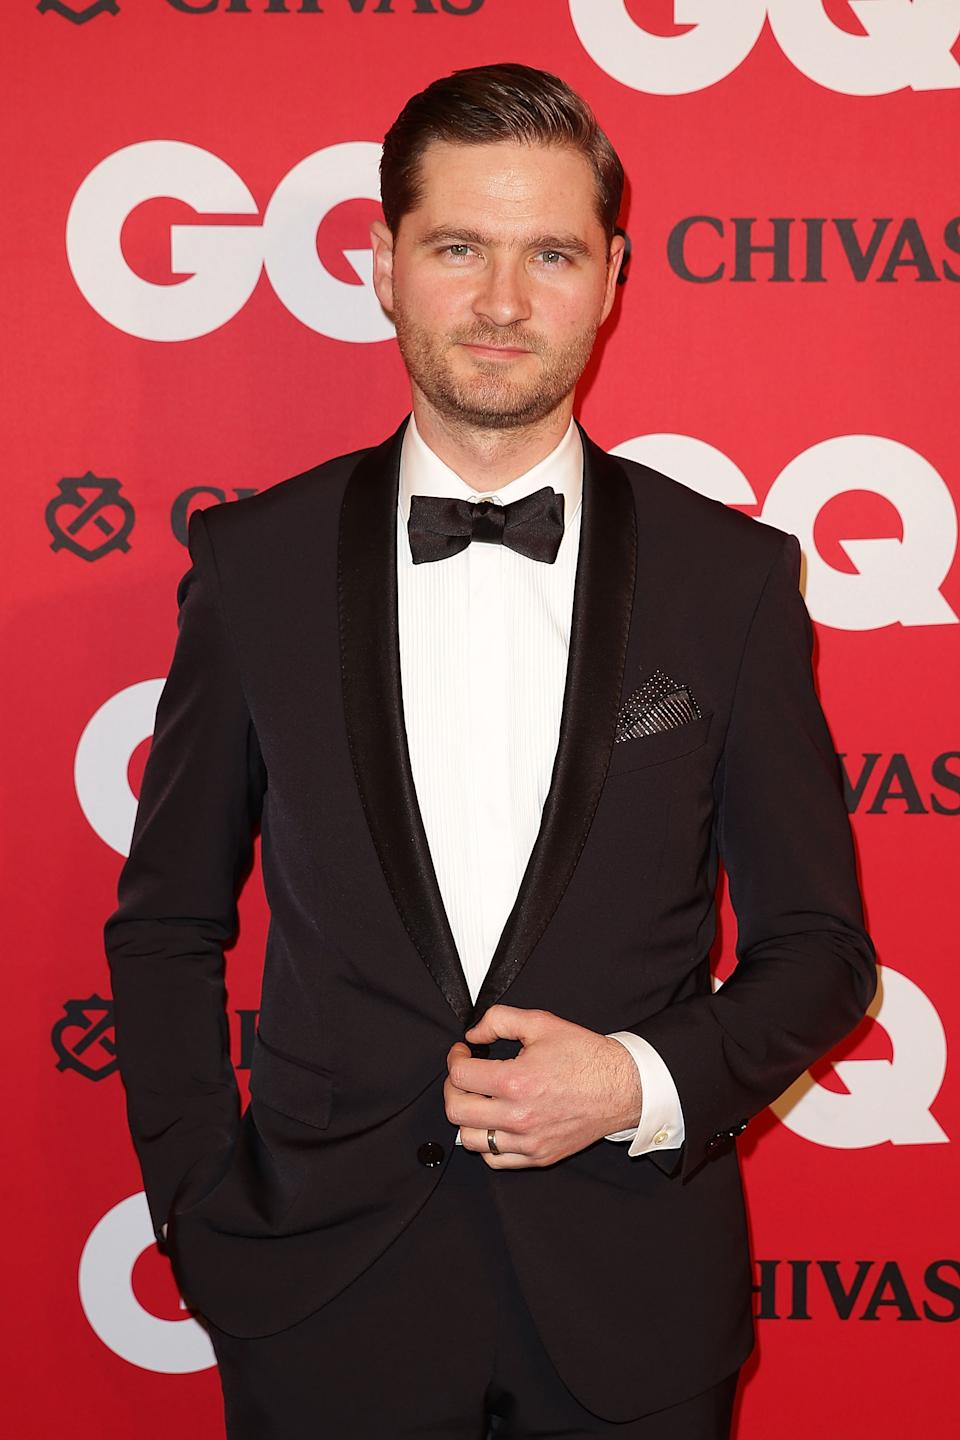 Charlie Pickering arrives at the GQ Men of the Year awards at the Ivy Ballroom on November 19, 2013 in Sydney, Australia